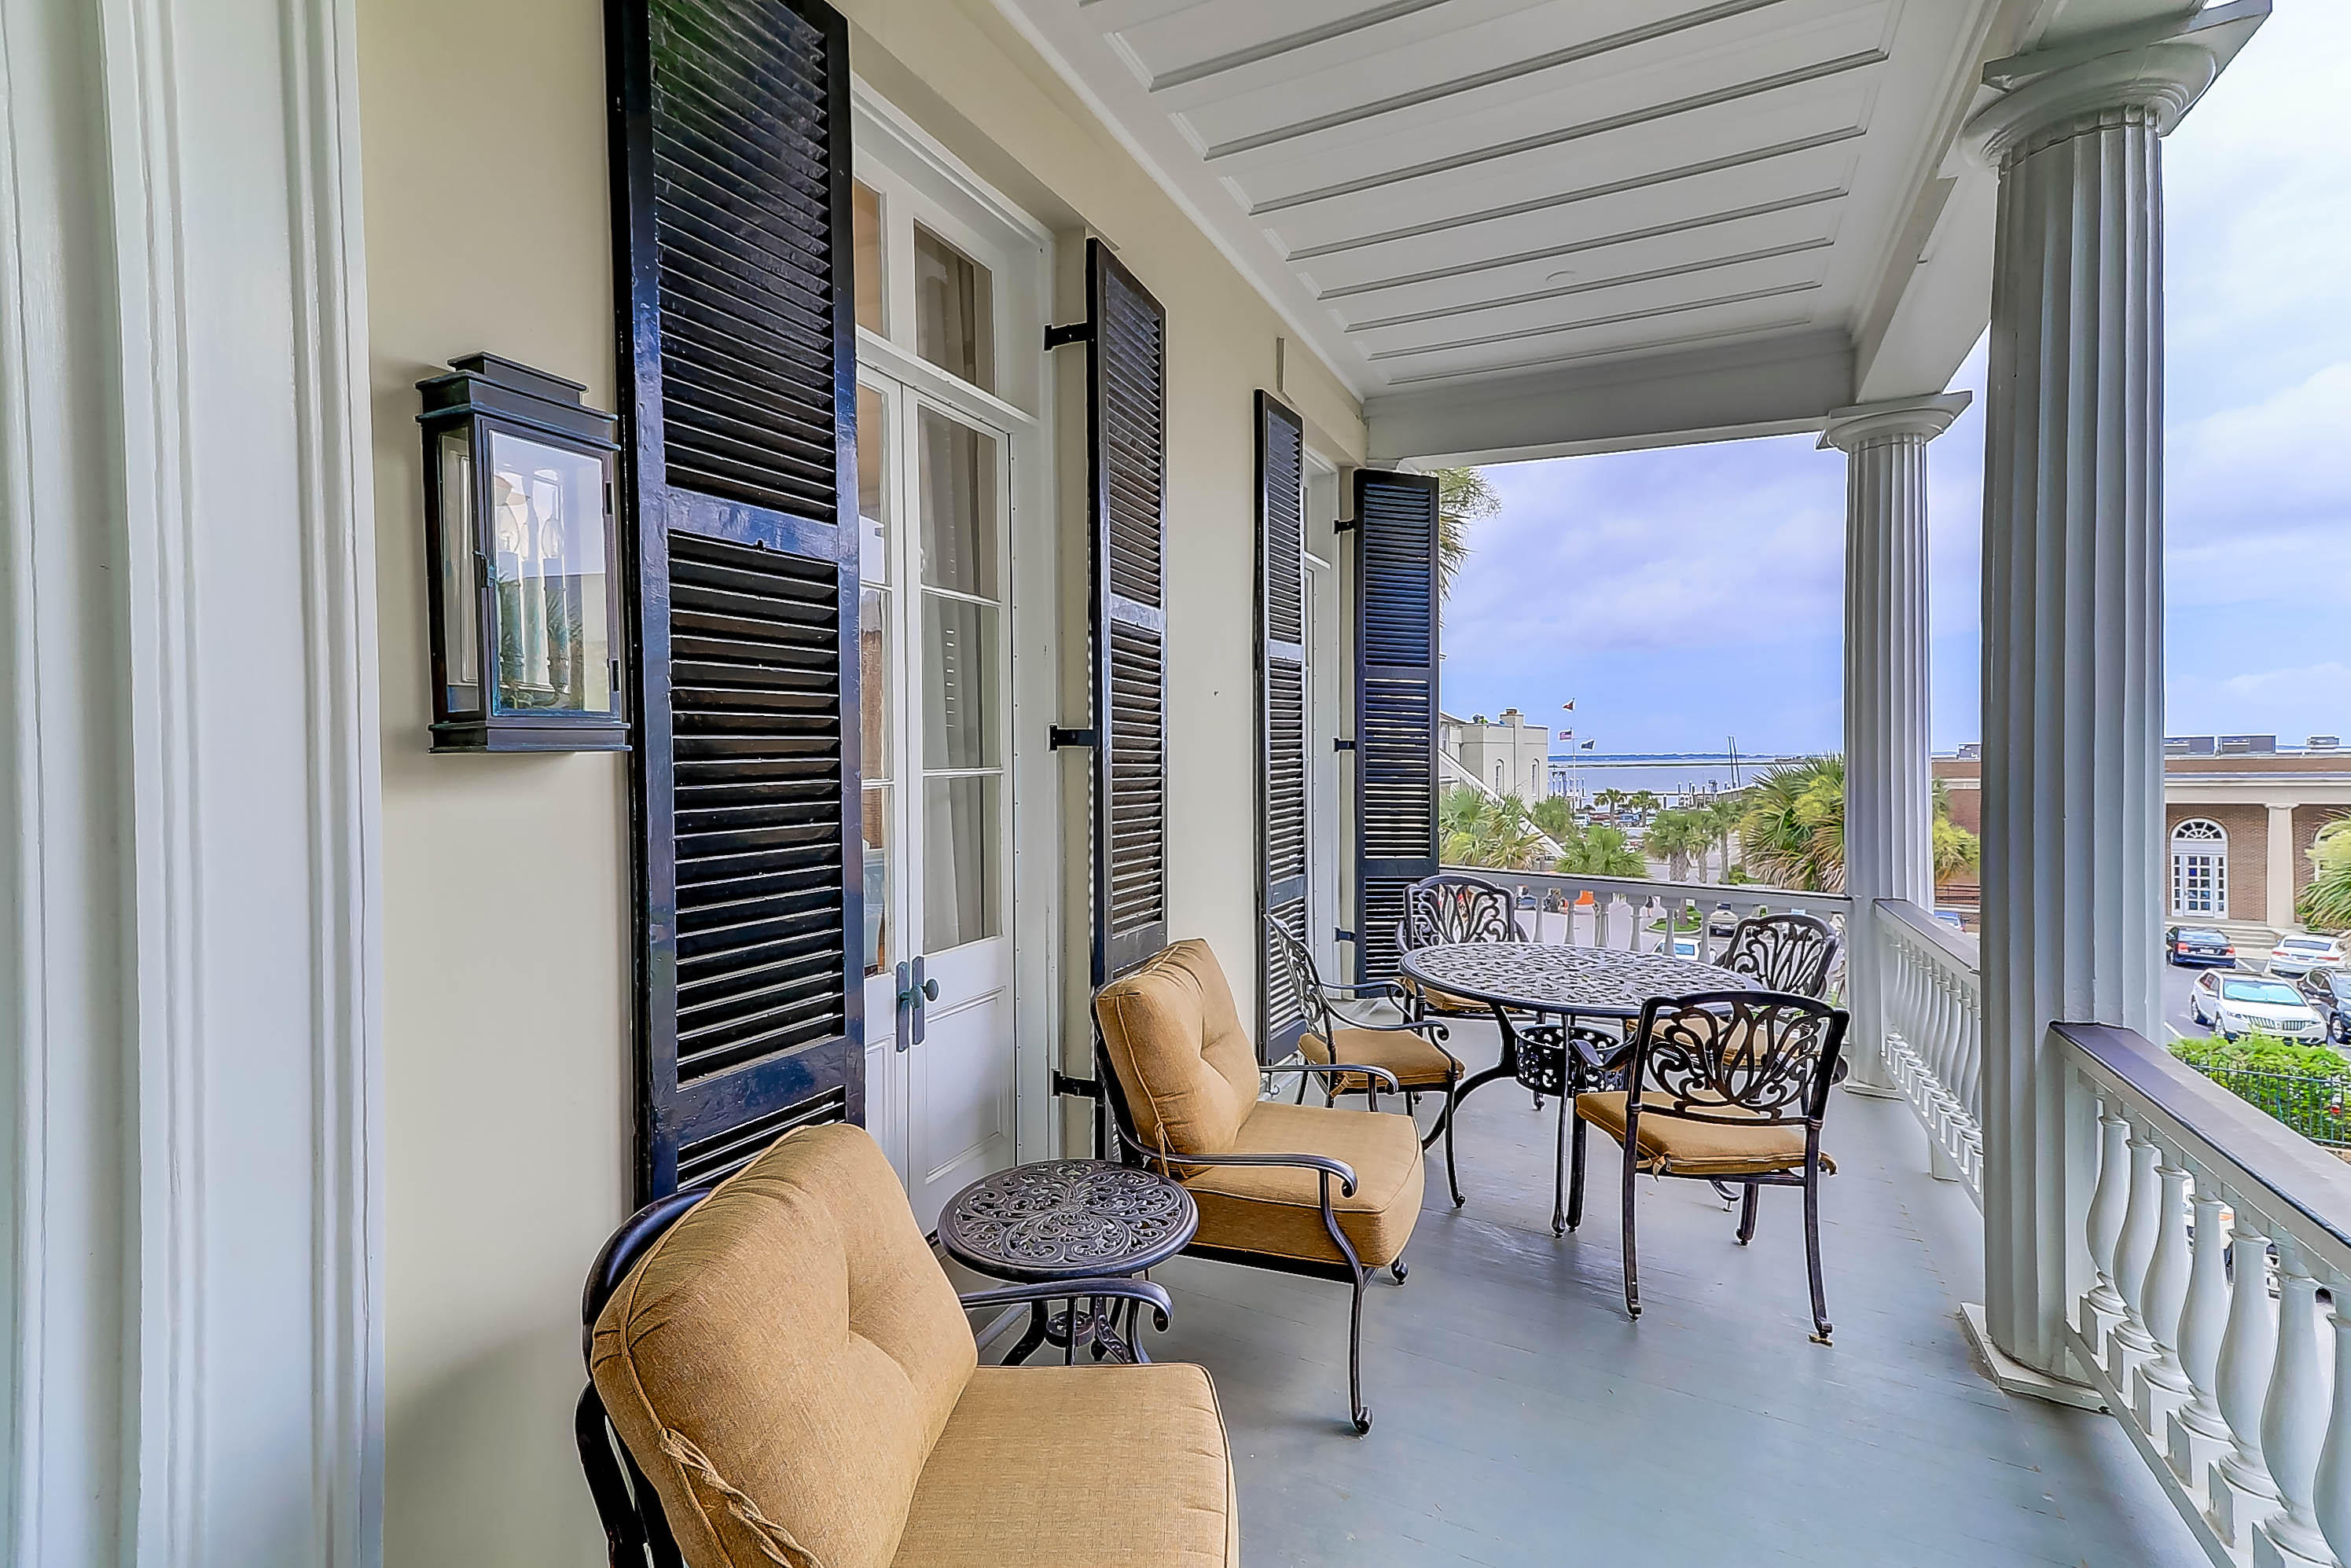 Home for sale 45 East Bay Street, South Of Broad, Downtown Charleston, SC